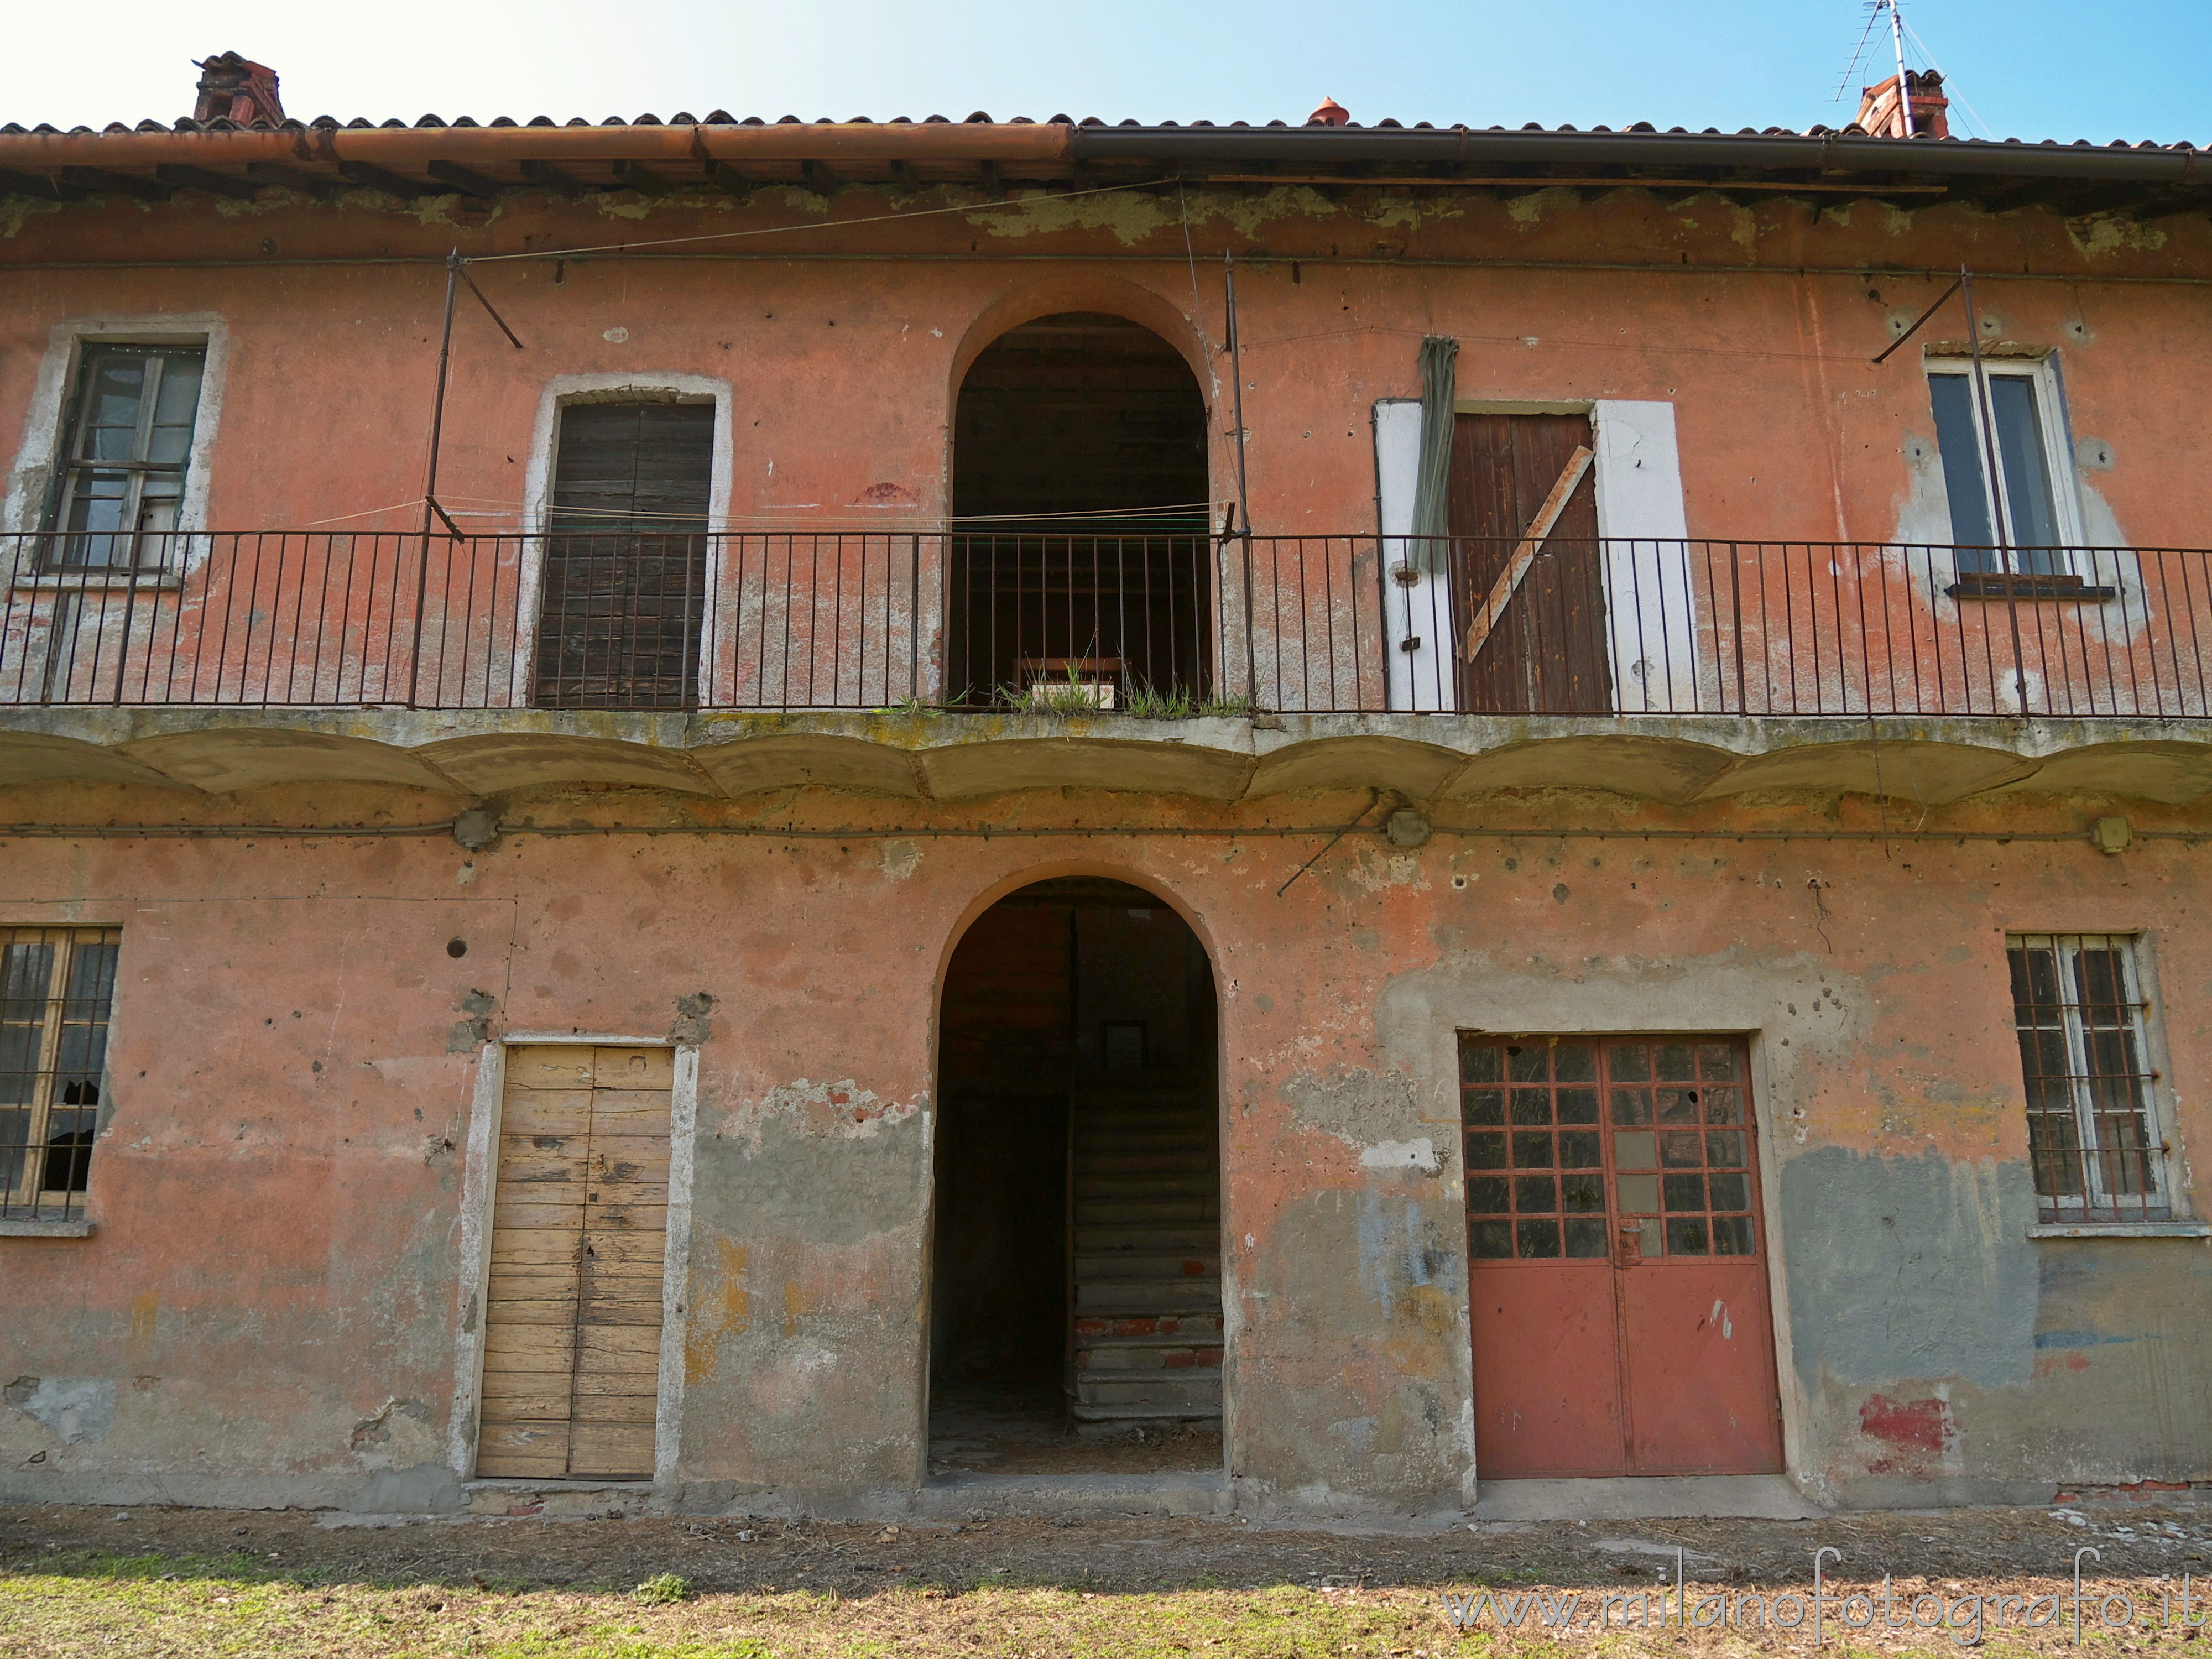 Milan (Italy): Farmhouse in Macconago, one of the many villages of Milan - Milan (Italy)